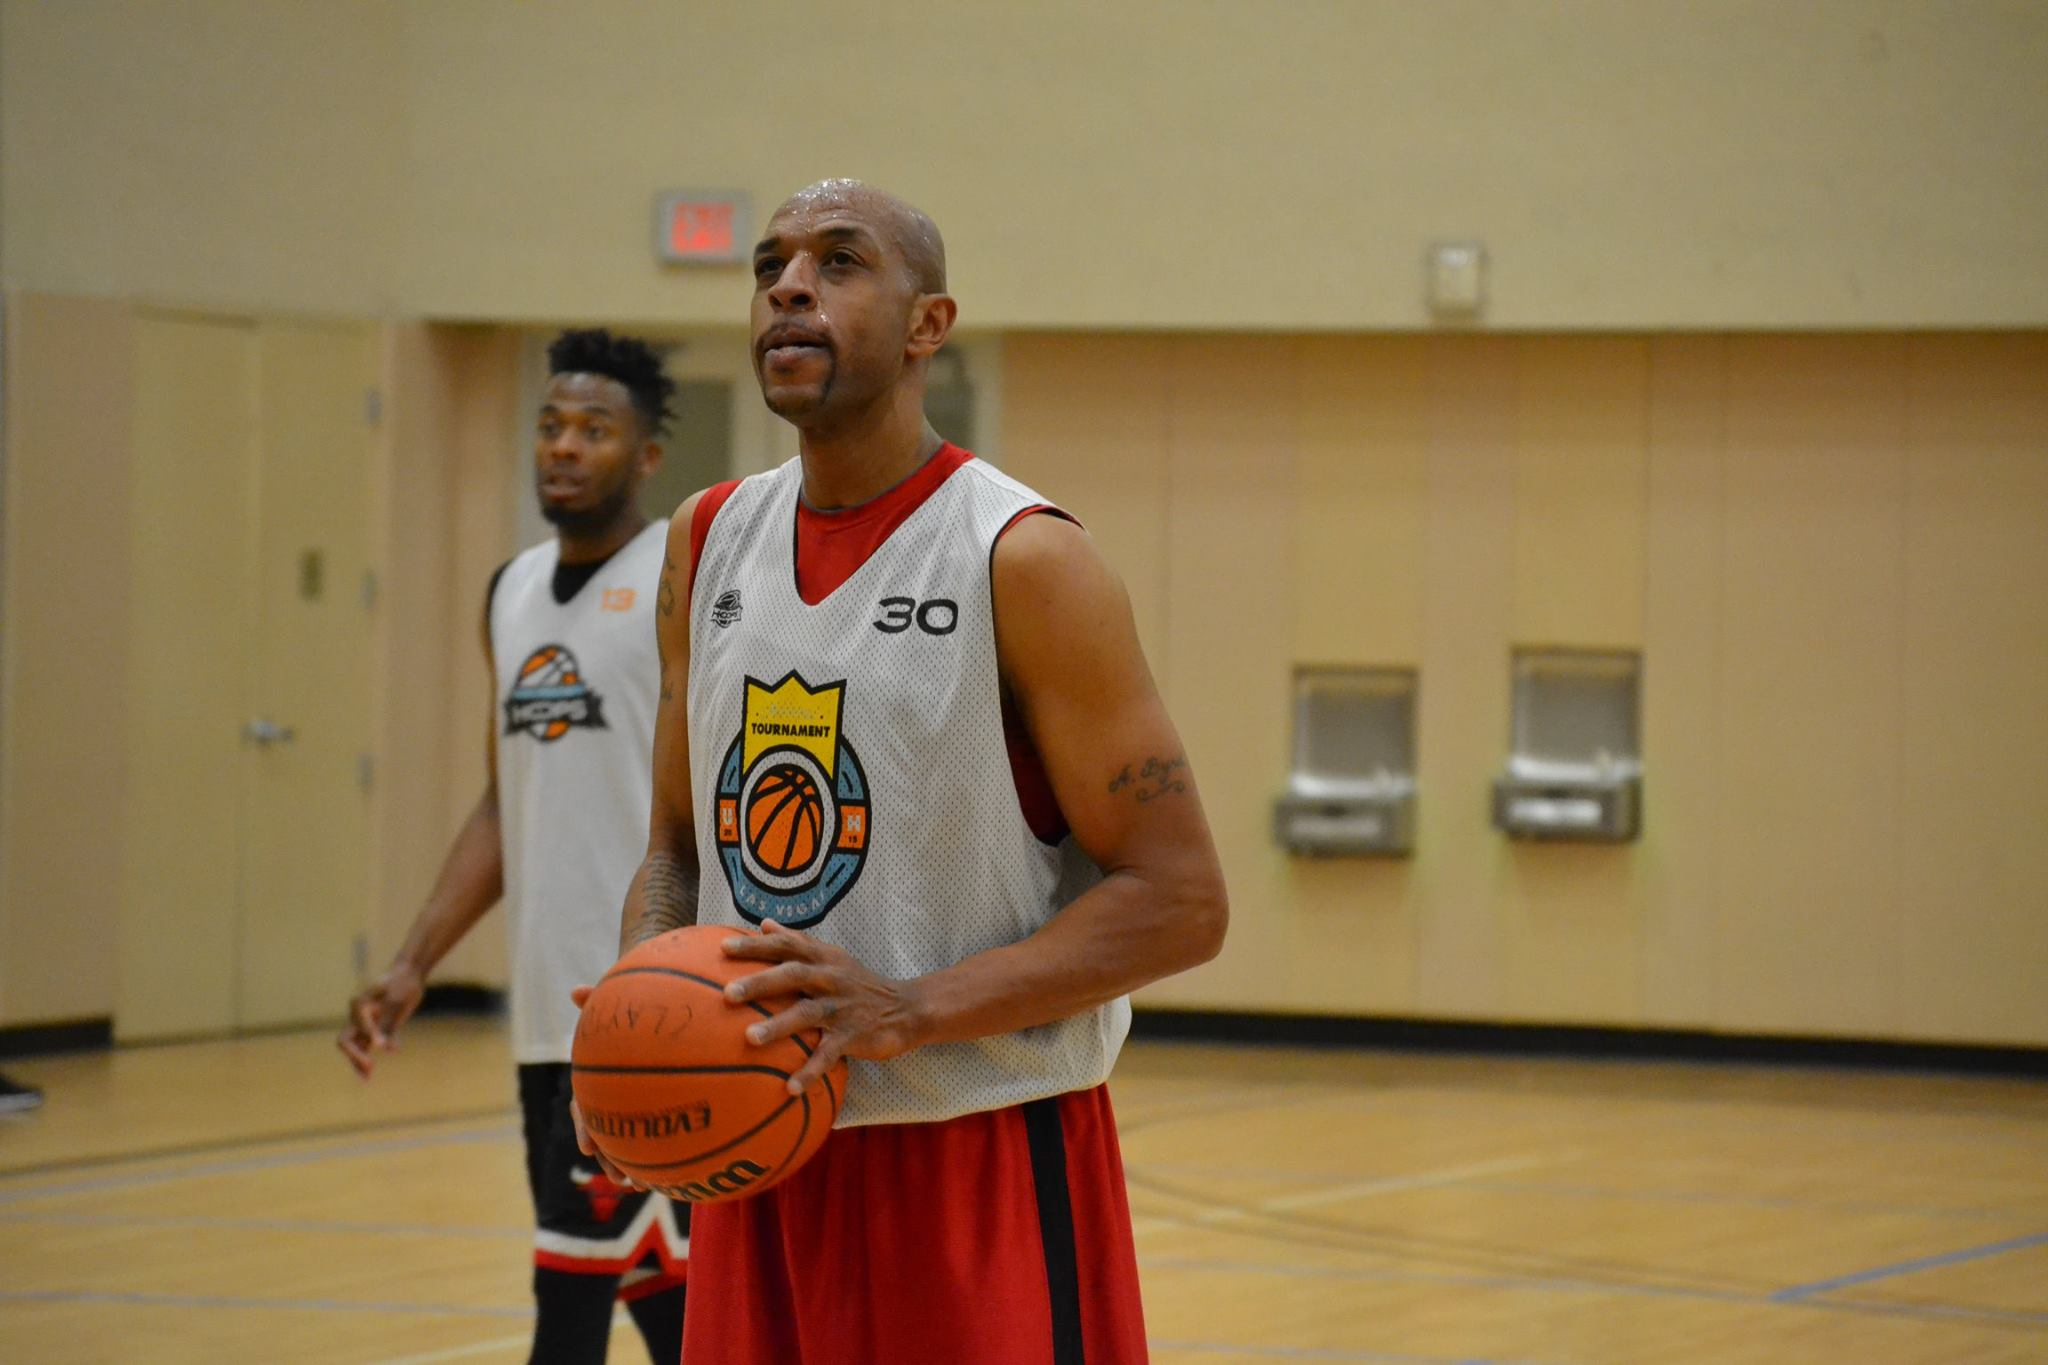 Byrd focusing at the free-throw line